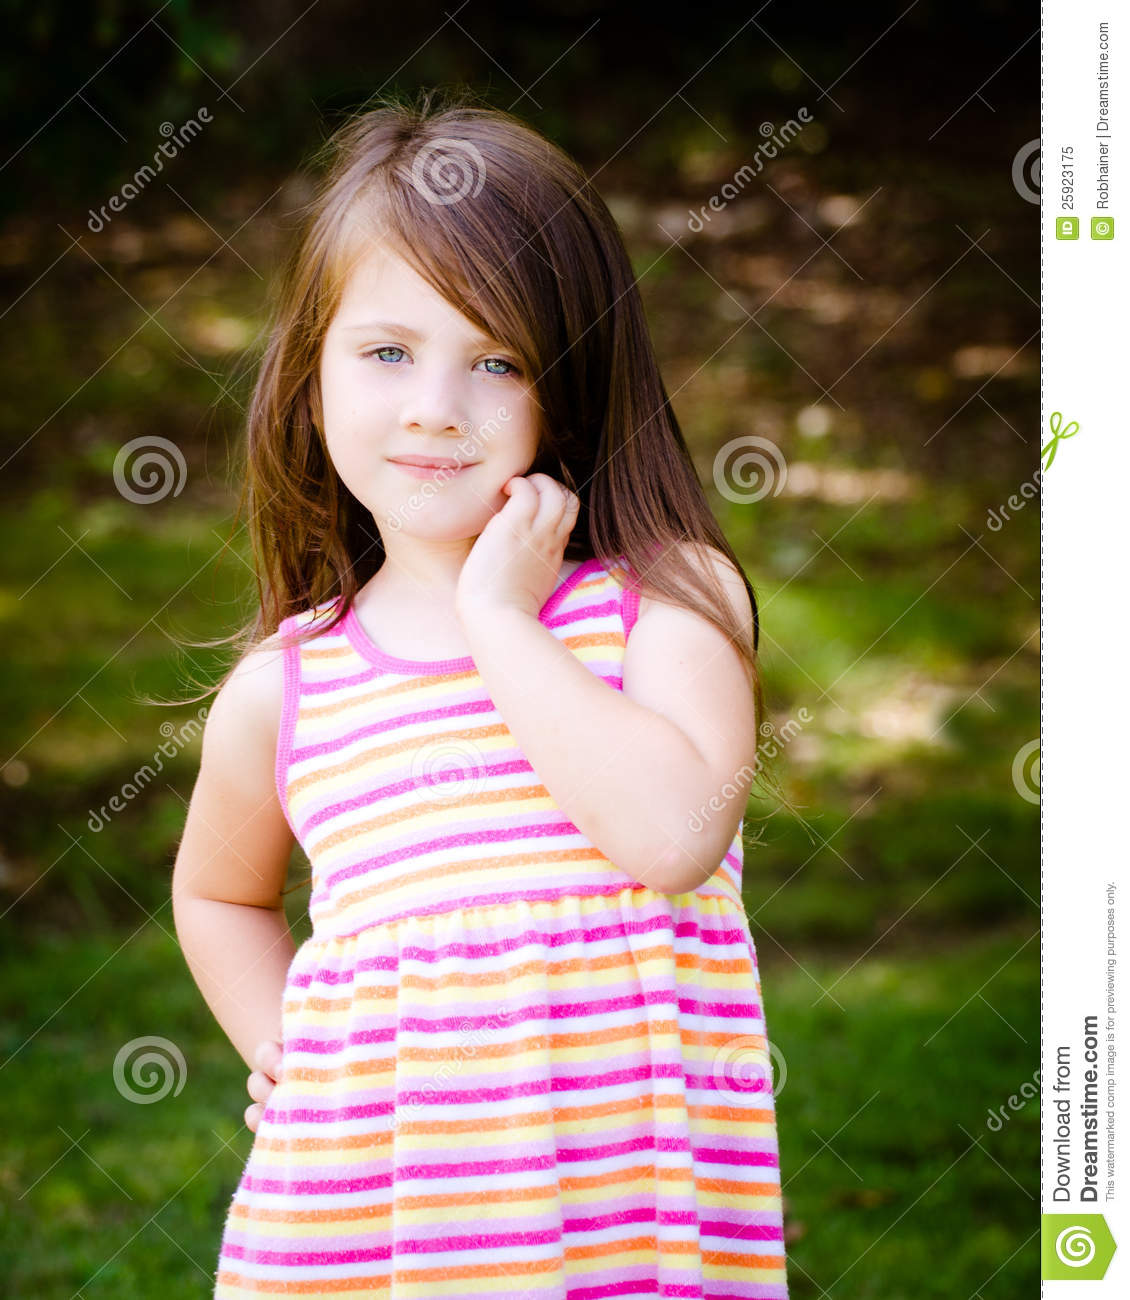 Outdoor Portrait Of Cute Young Girl Royalty Free Stock